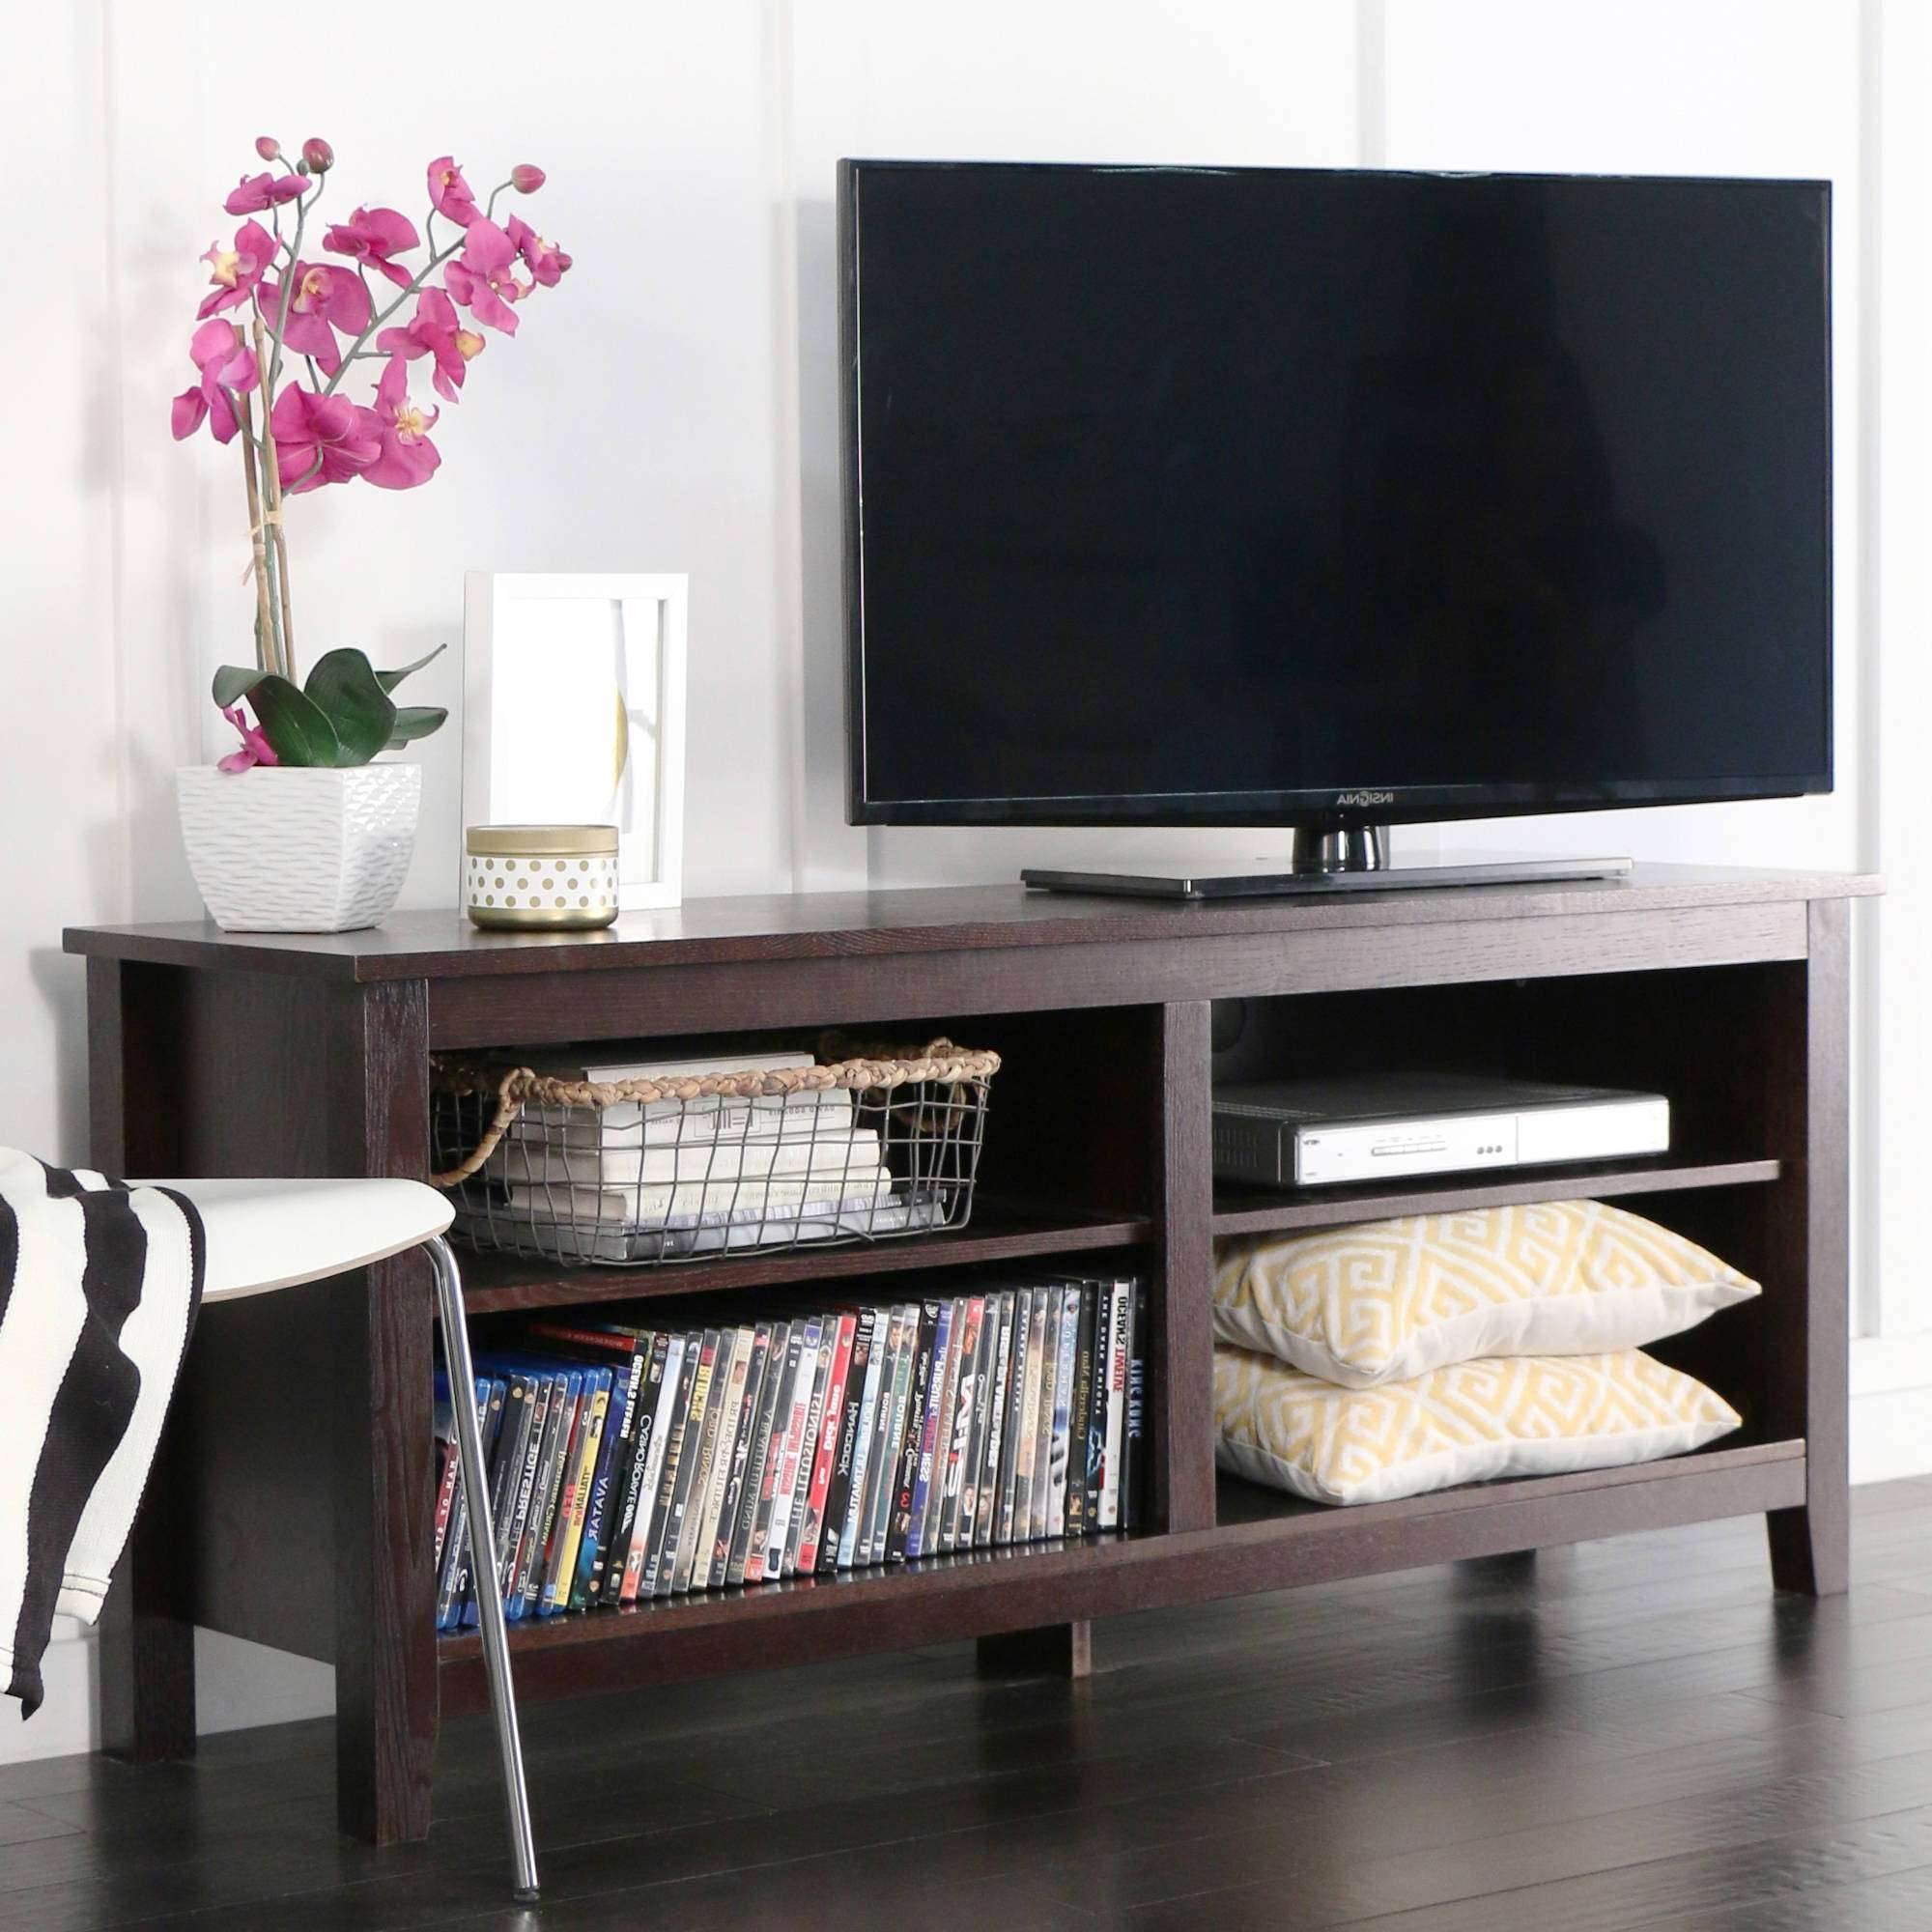 Tv : Rustic Red Tv Stands Glorious Rustic Red Tv Stands' Dramatic With Rustic Red Tv Stands (View 17 of 20)